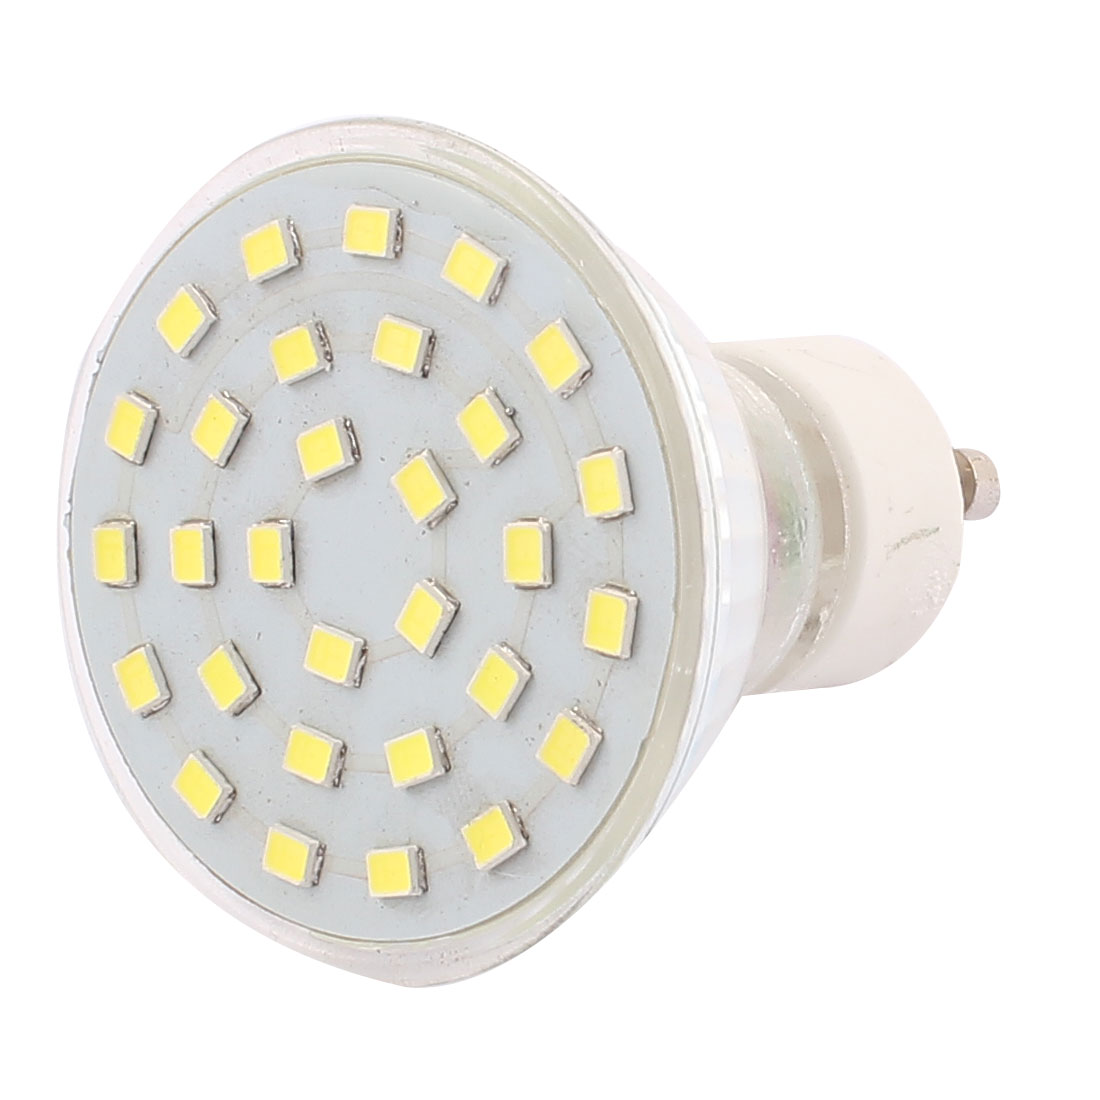 220V GU10 LED Light 5W 2835 SMD 30 LEDs Spotlight Down Lamp Bulb Lighting Pure White